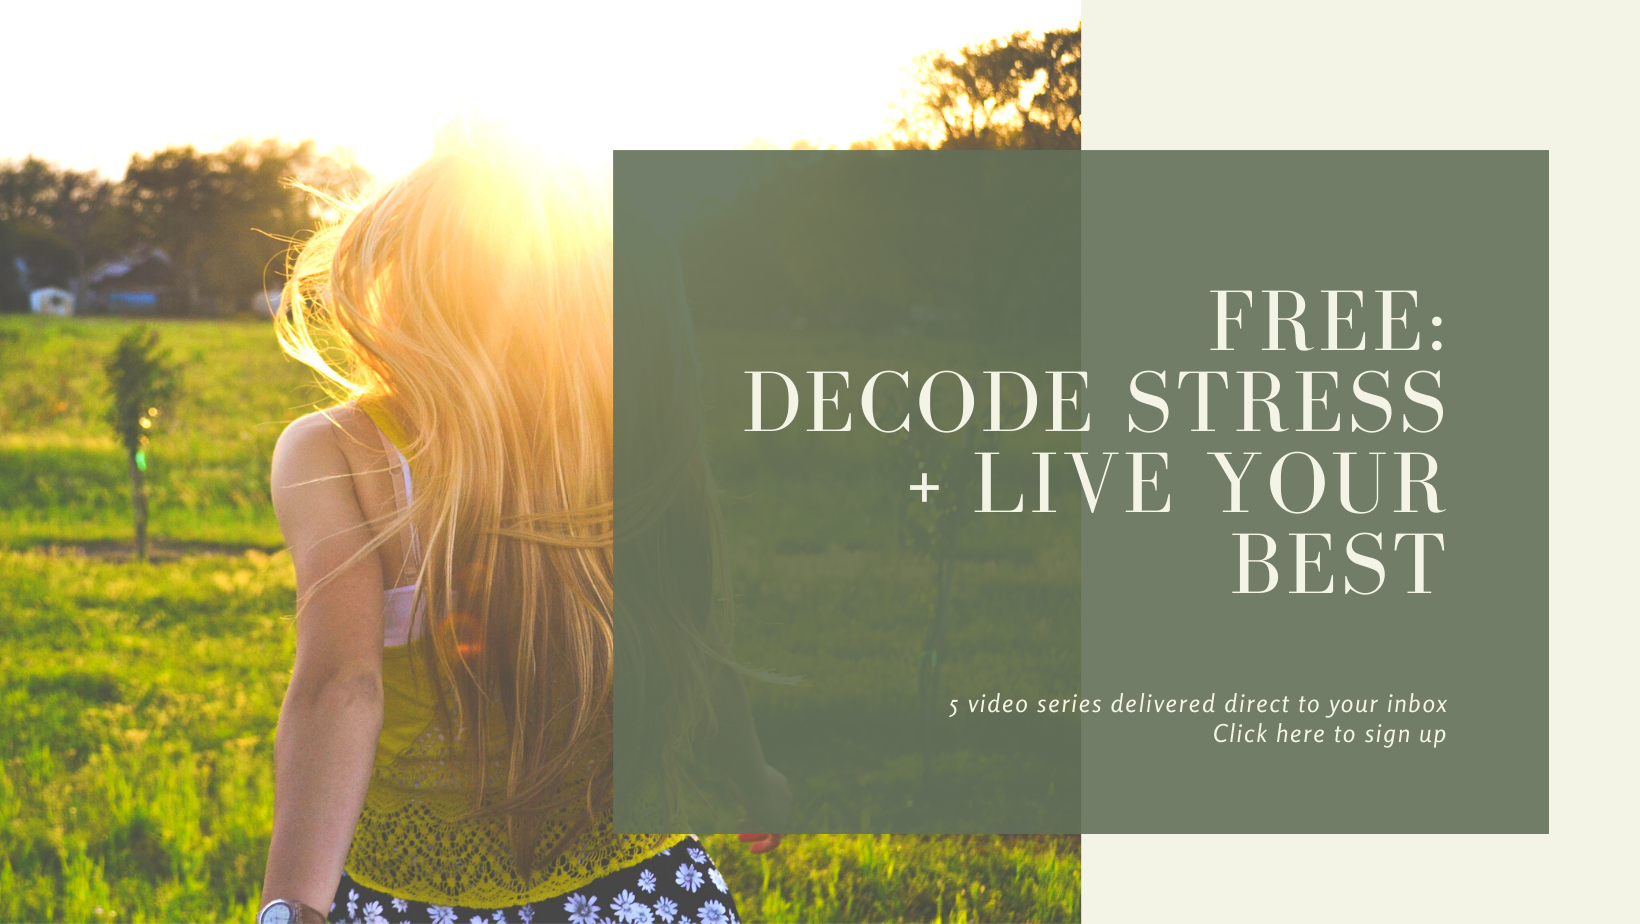 Anna Grillo FREE Decode stress + live your best